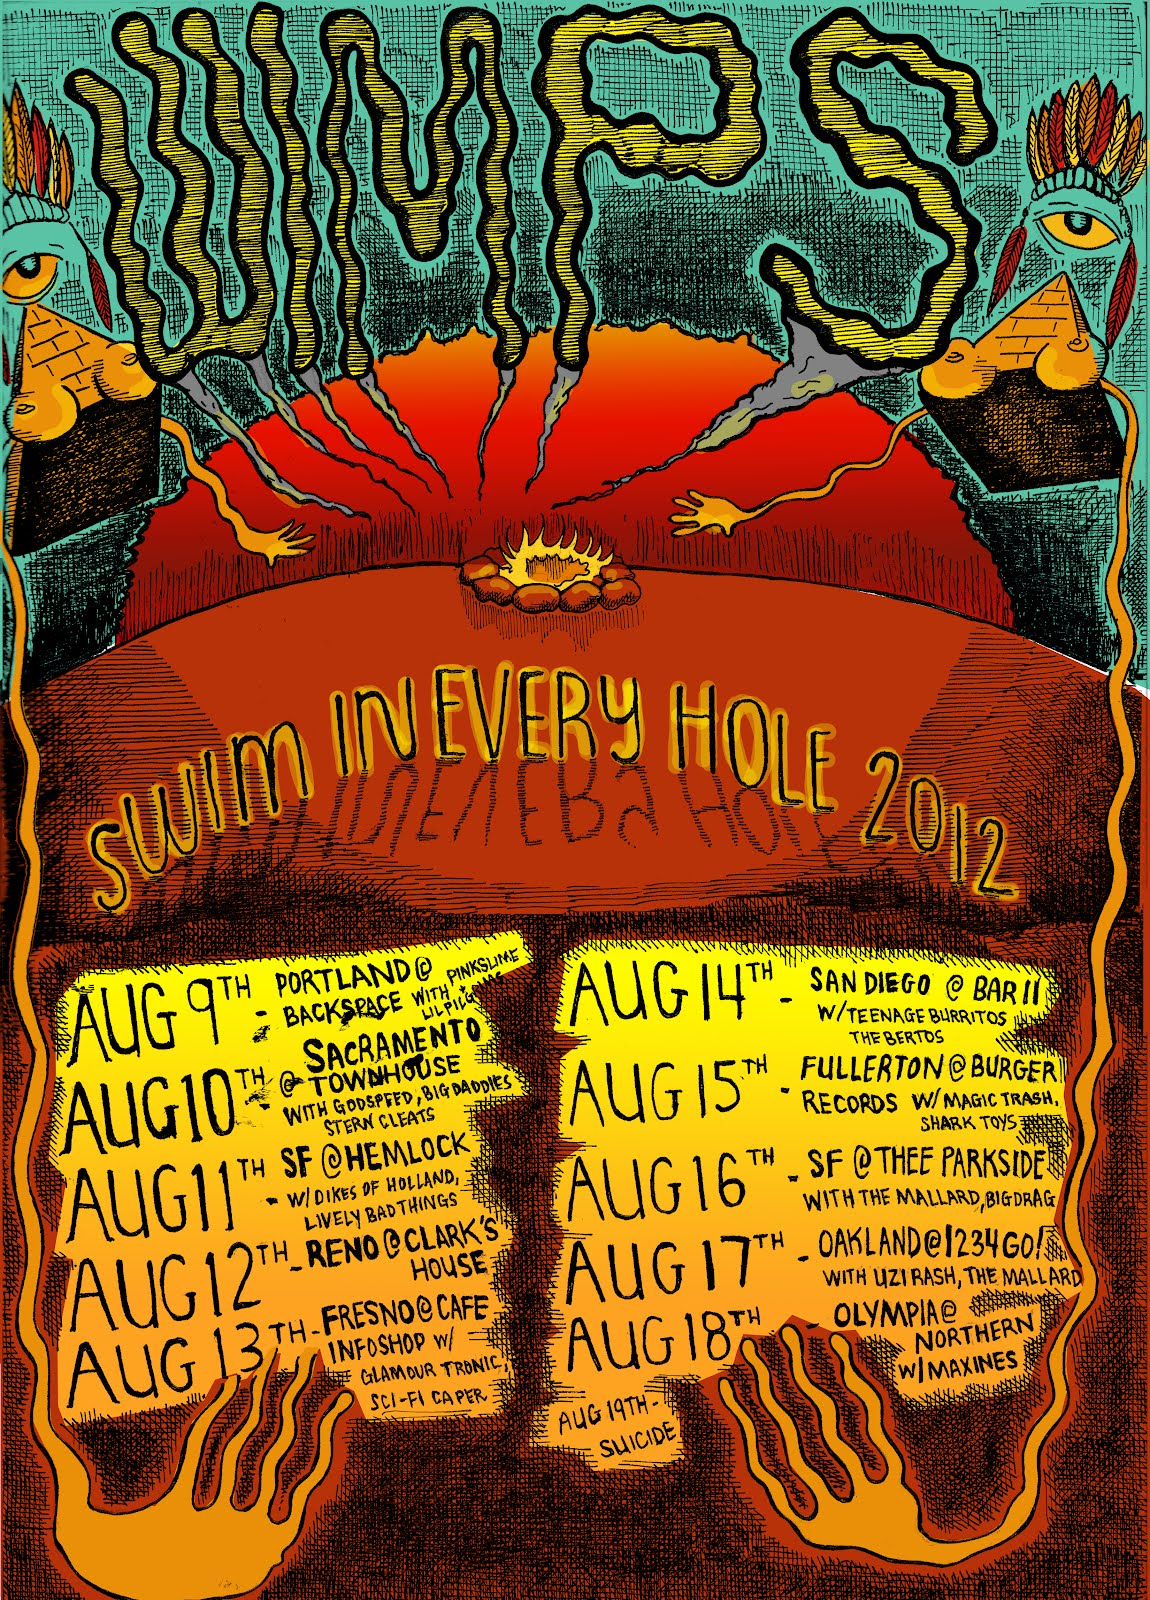 Wimps - Swim in Every Hole 2012 Tour Poster